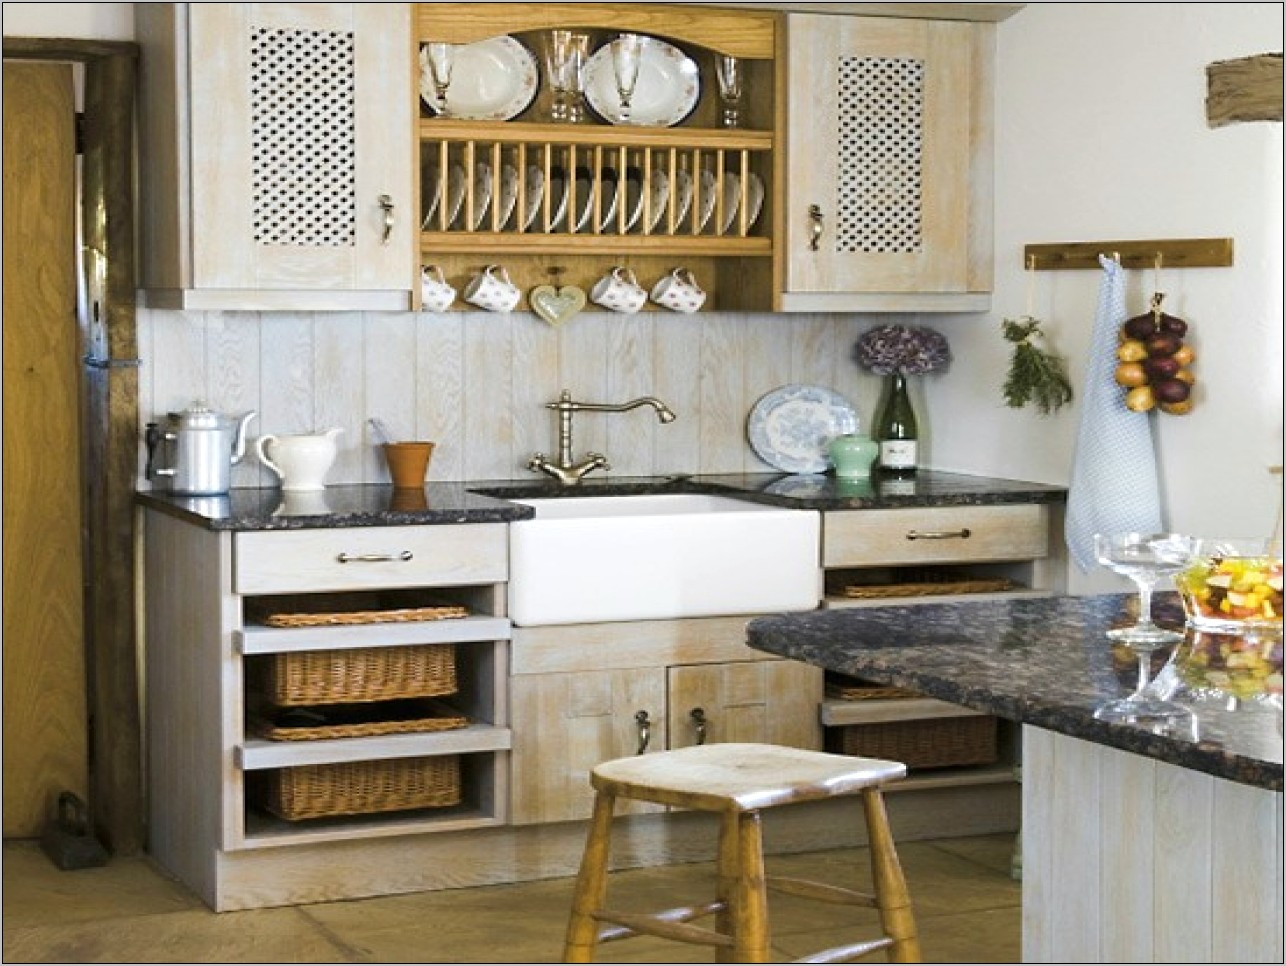 Home Decor With Kitchen Wares